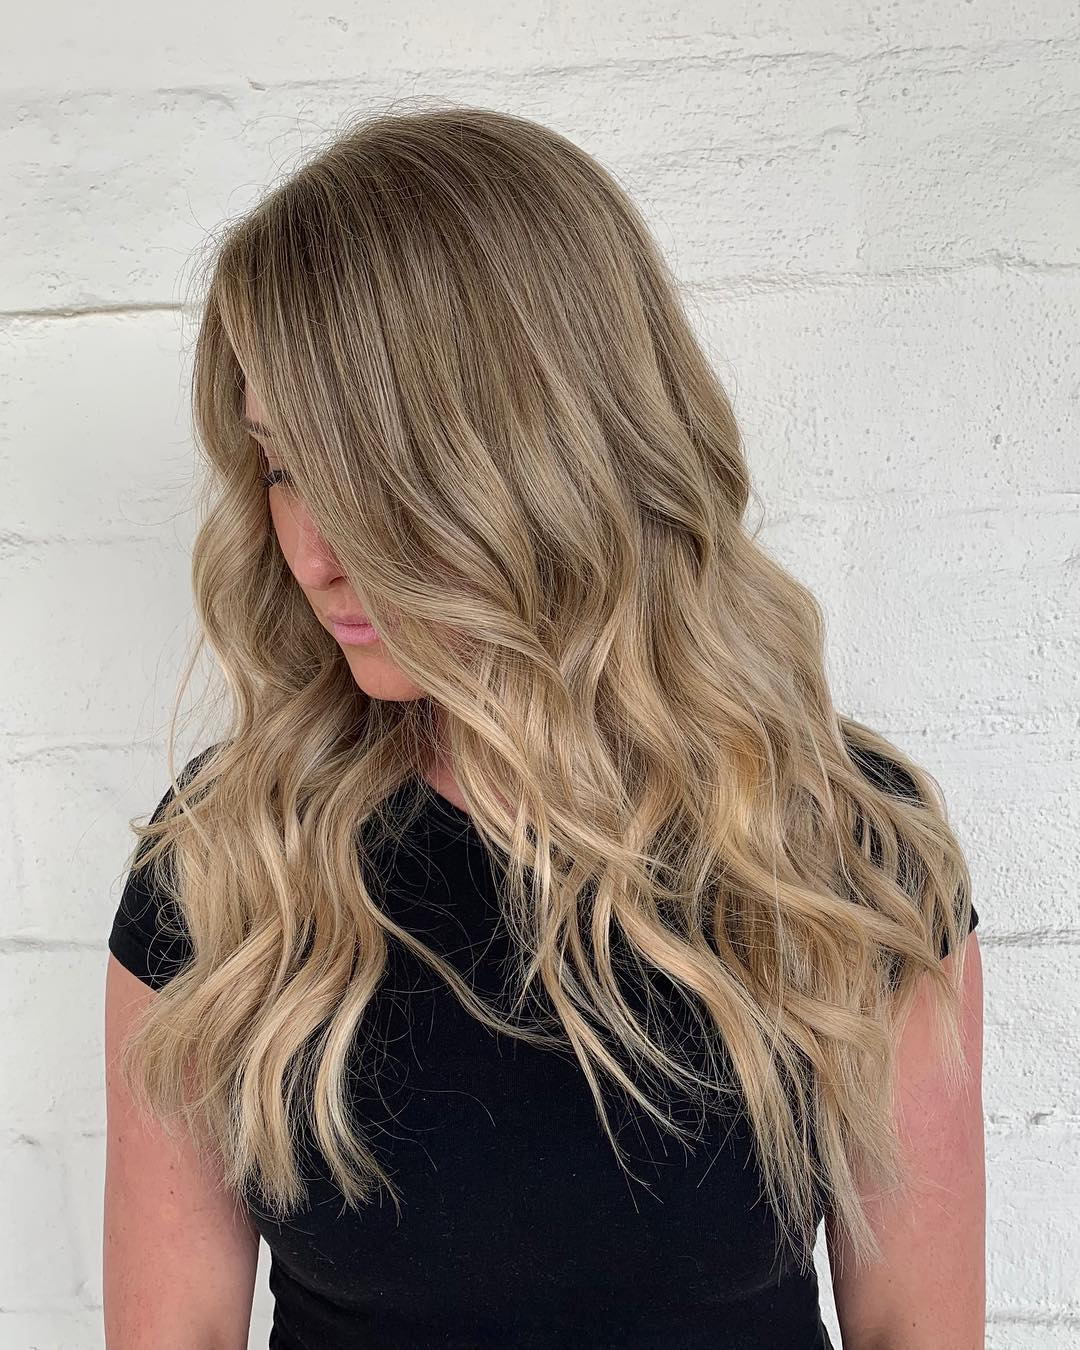 Hair We Love September 24th - 30th 2018